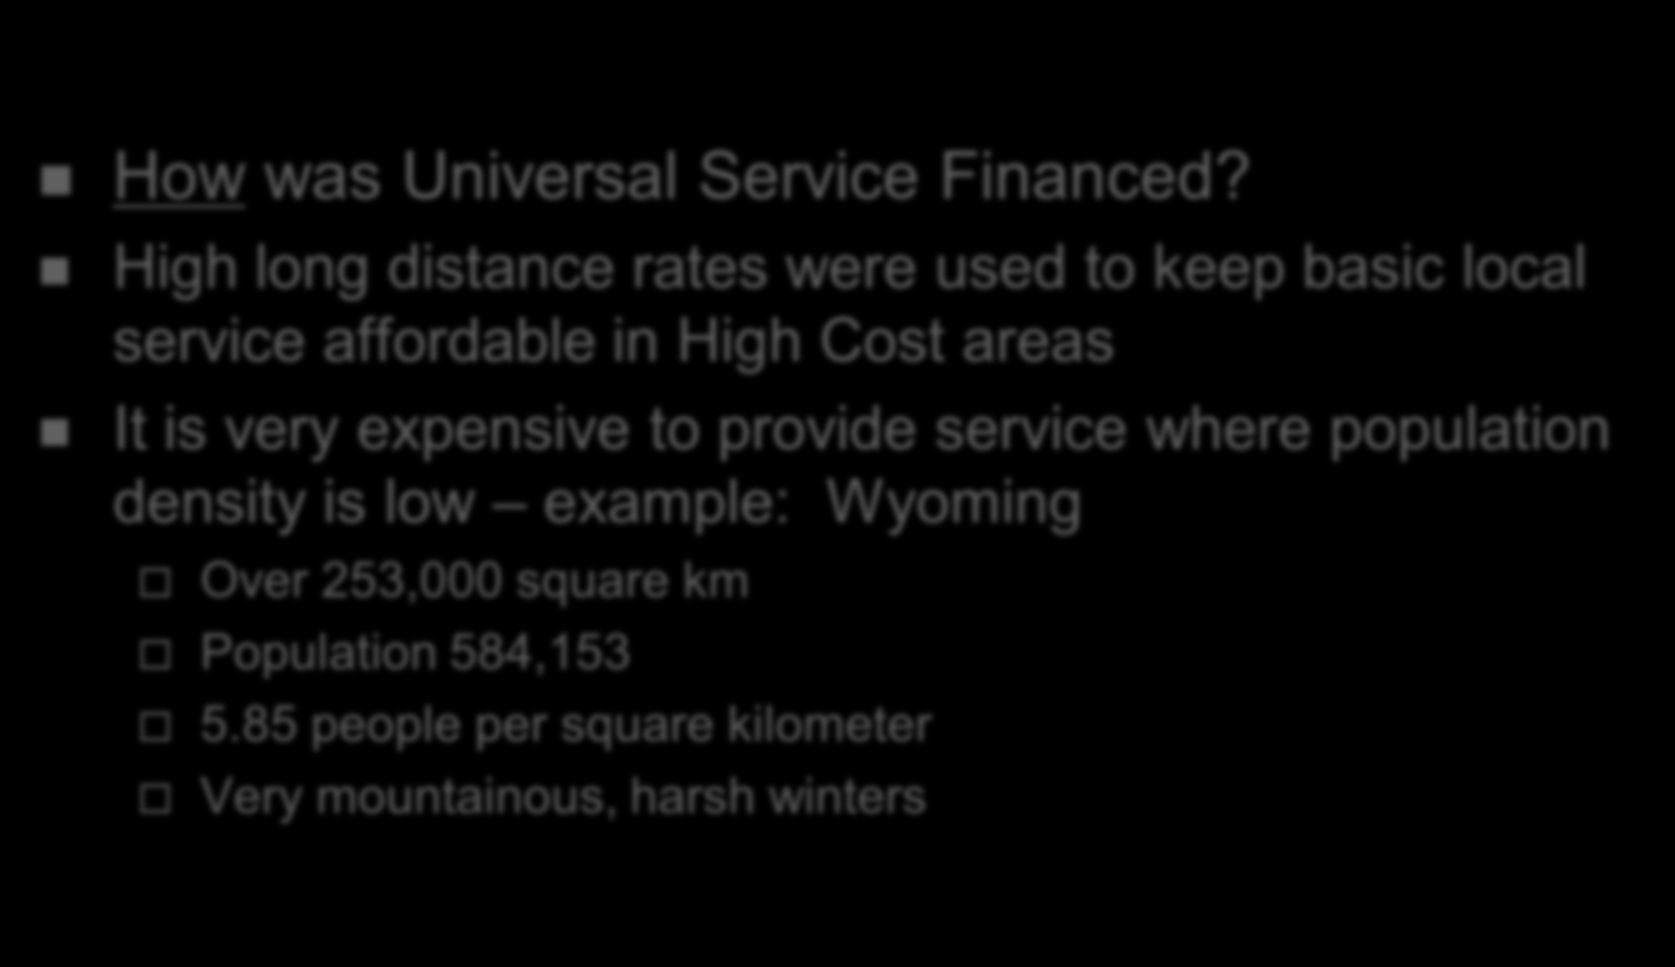 History of Universal Service in the USA How was Universal Service Financed?